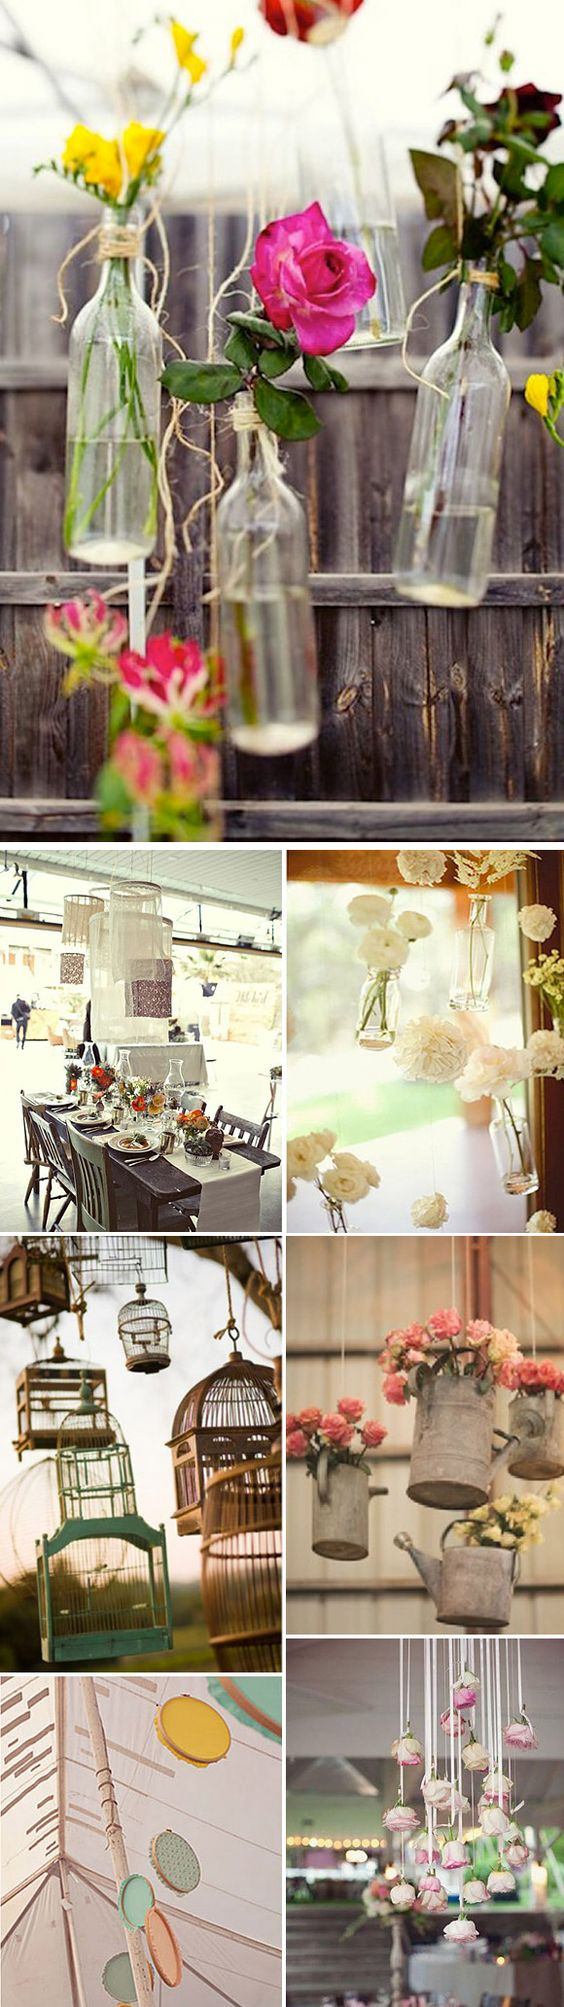 Decoraciones colgantes para bodas y fiestas mil ideas - Decoracion con luces ...